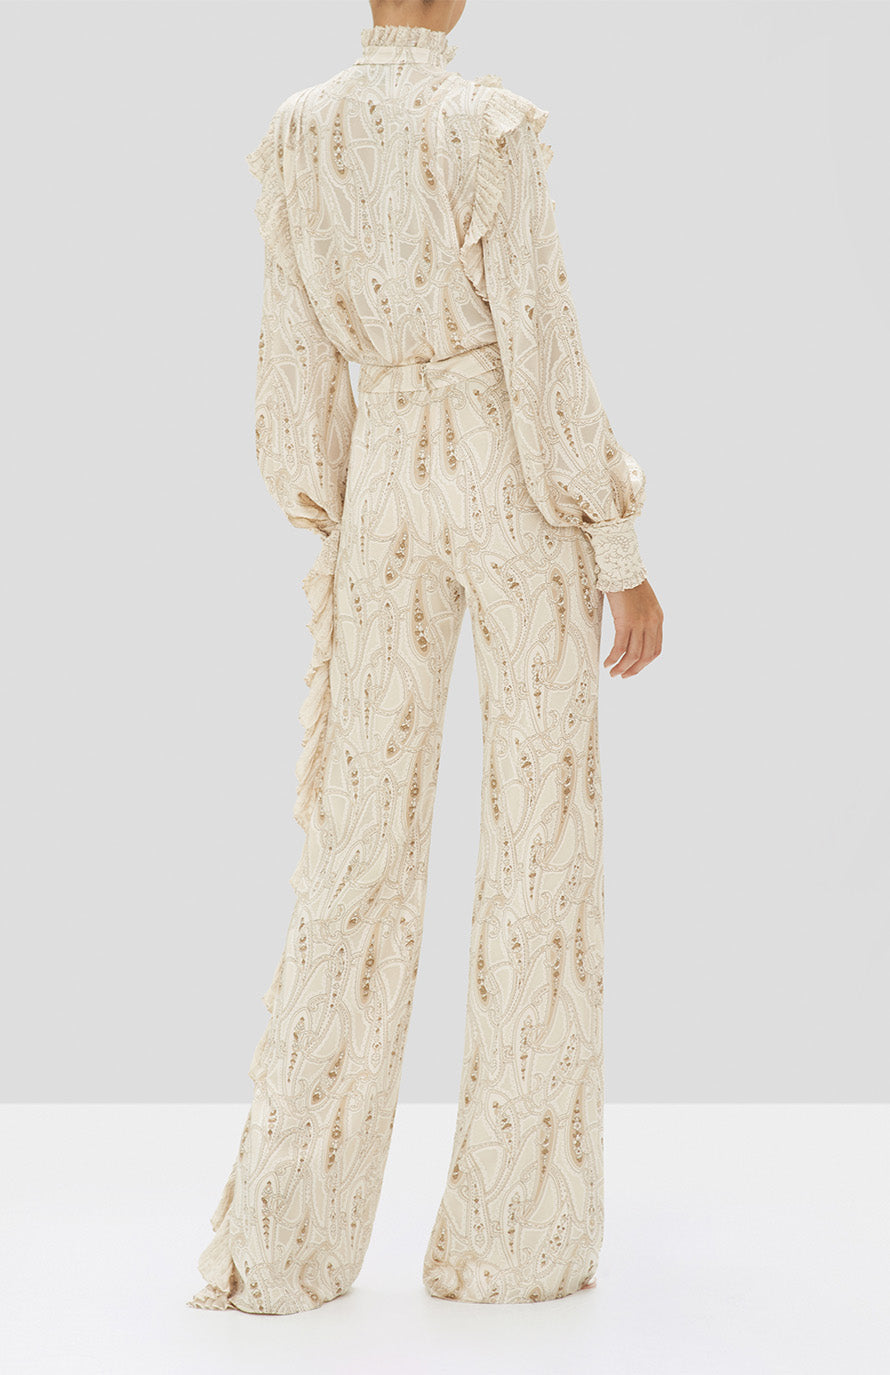 Alexis Eline Top and Izami Pant in Cream Paisley from the Holiday 2019 Ready To Wear Collection - Rear View